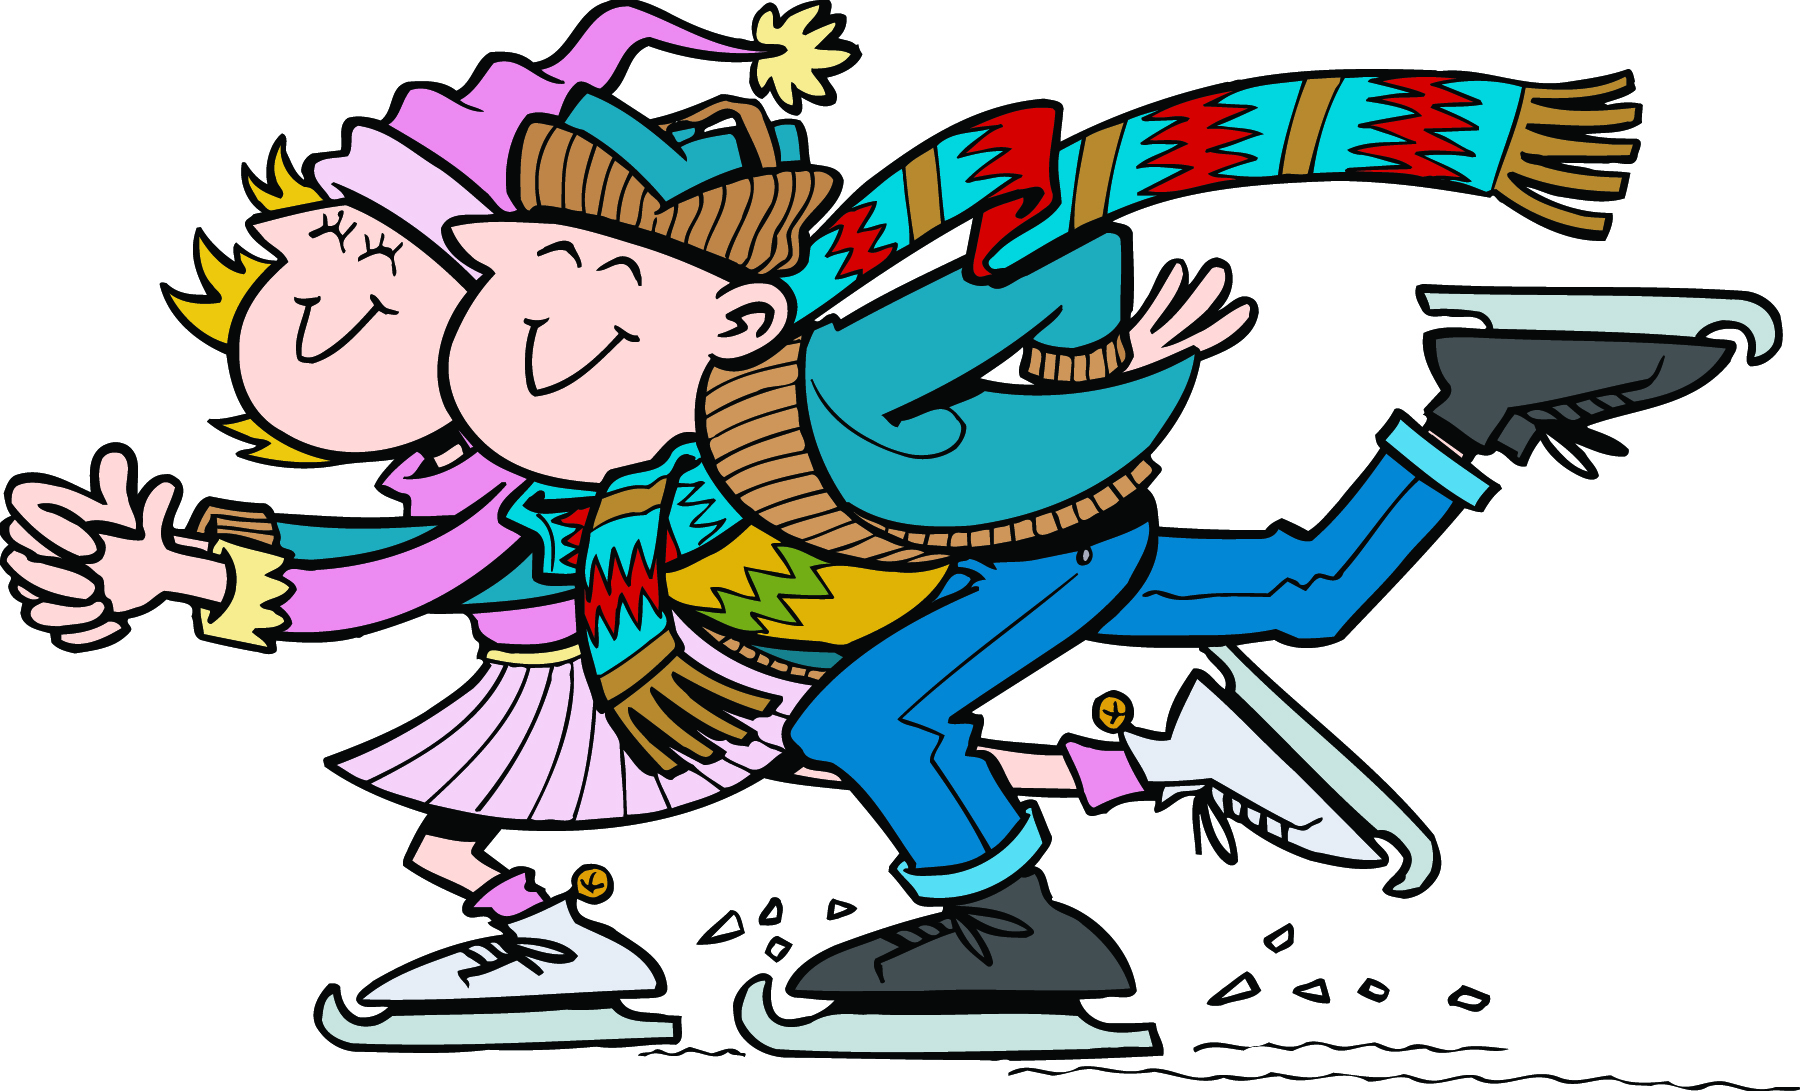 Skating images clipart clipart transparent download Free Ice Skating Cliparts, Download Free Clip Art, Free Clip ... clipart transparent download